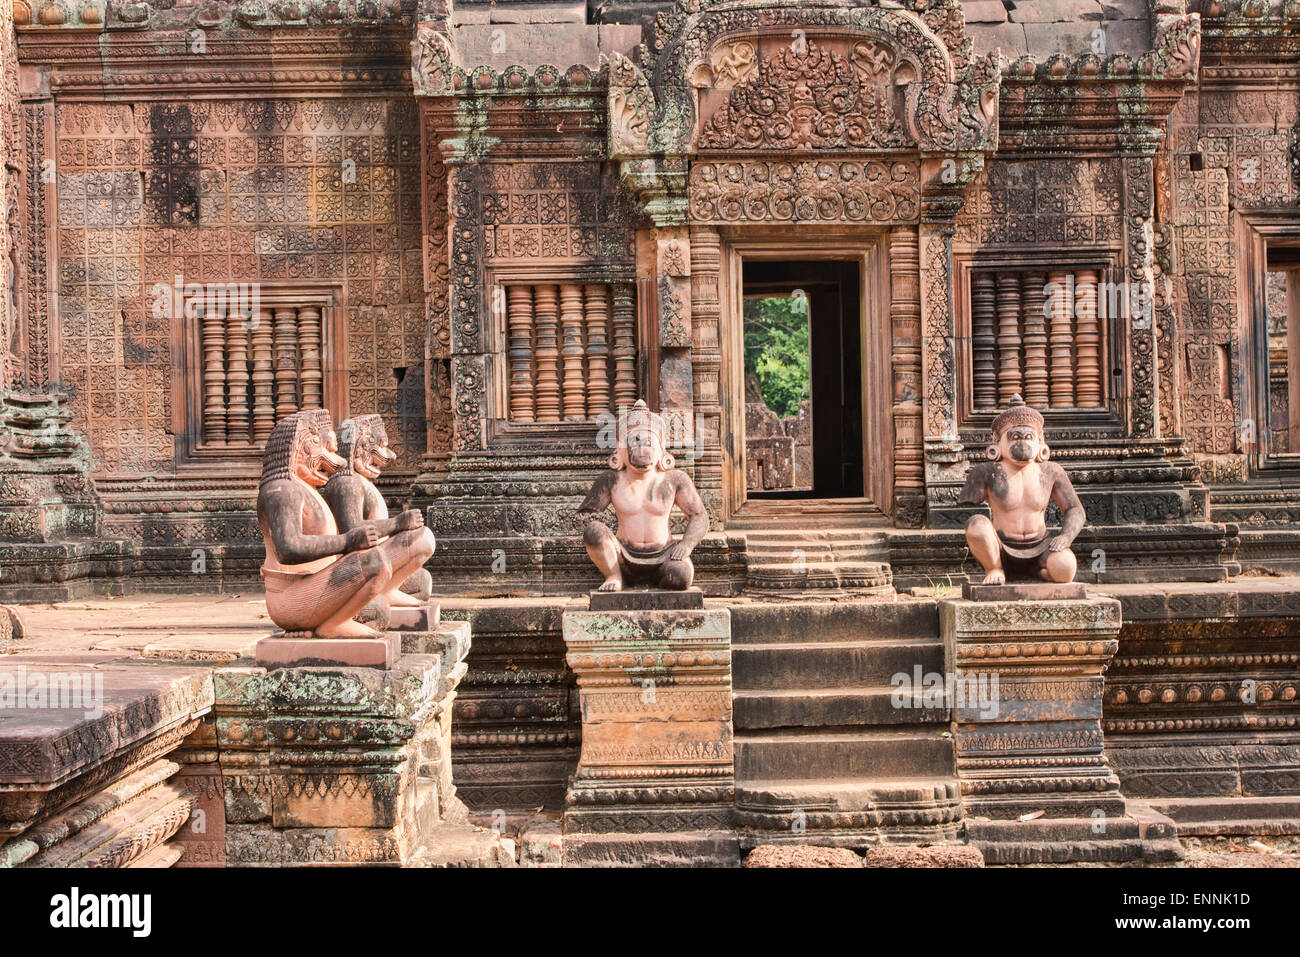 Monkey statues at the Banteay Srei temple at Angkor Wat in Siem Reap, Cambodia - Stock Image